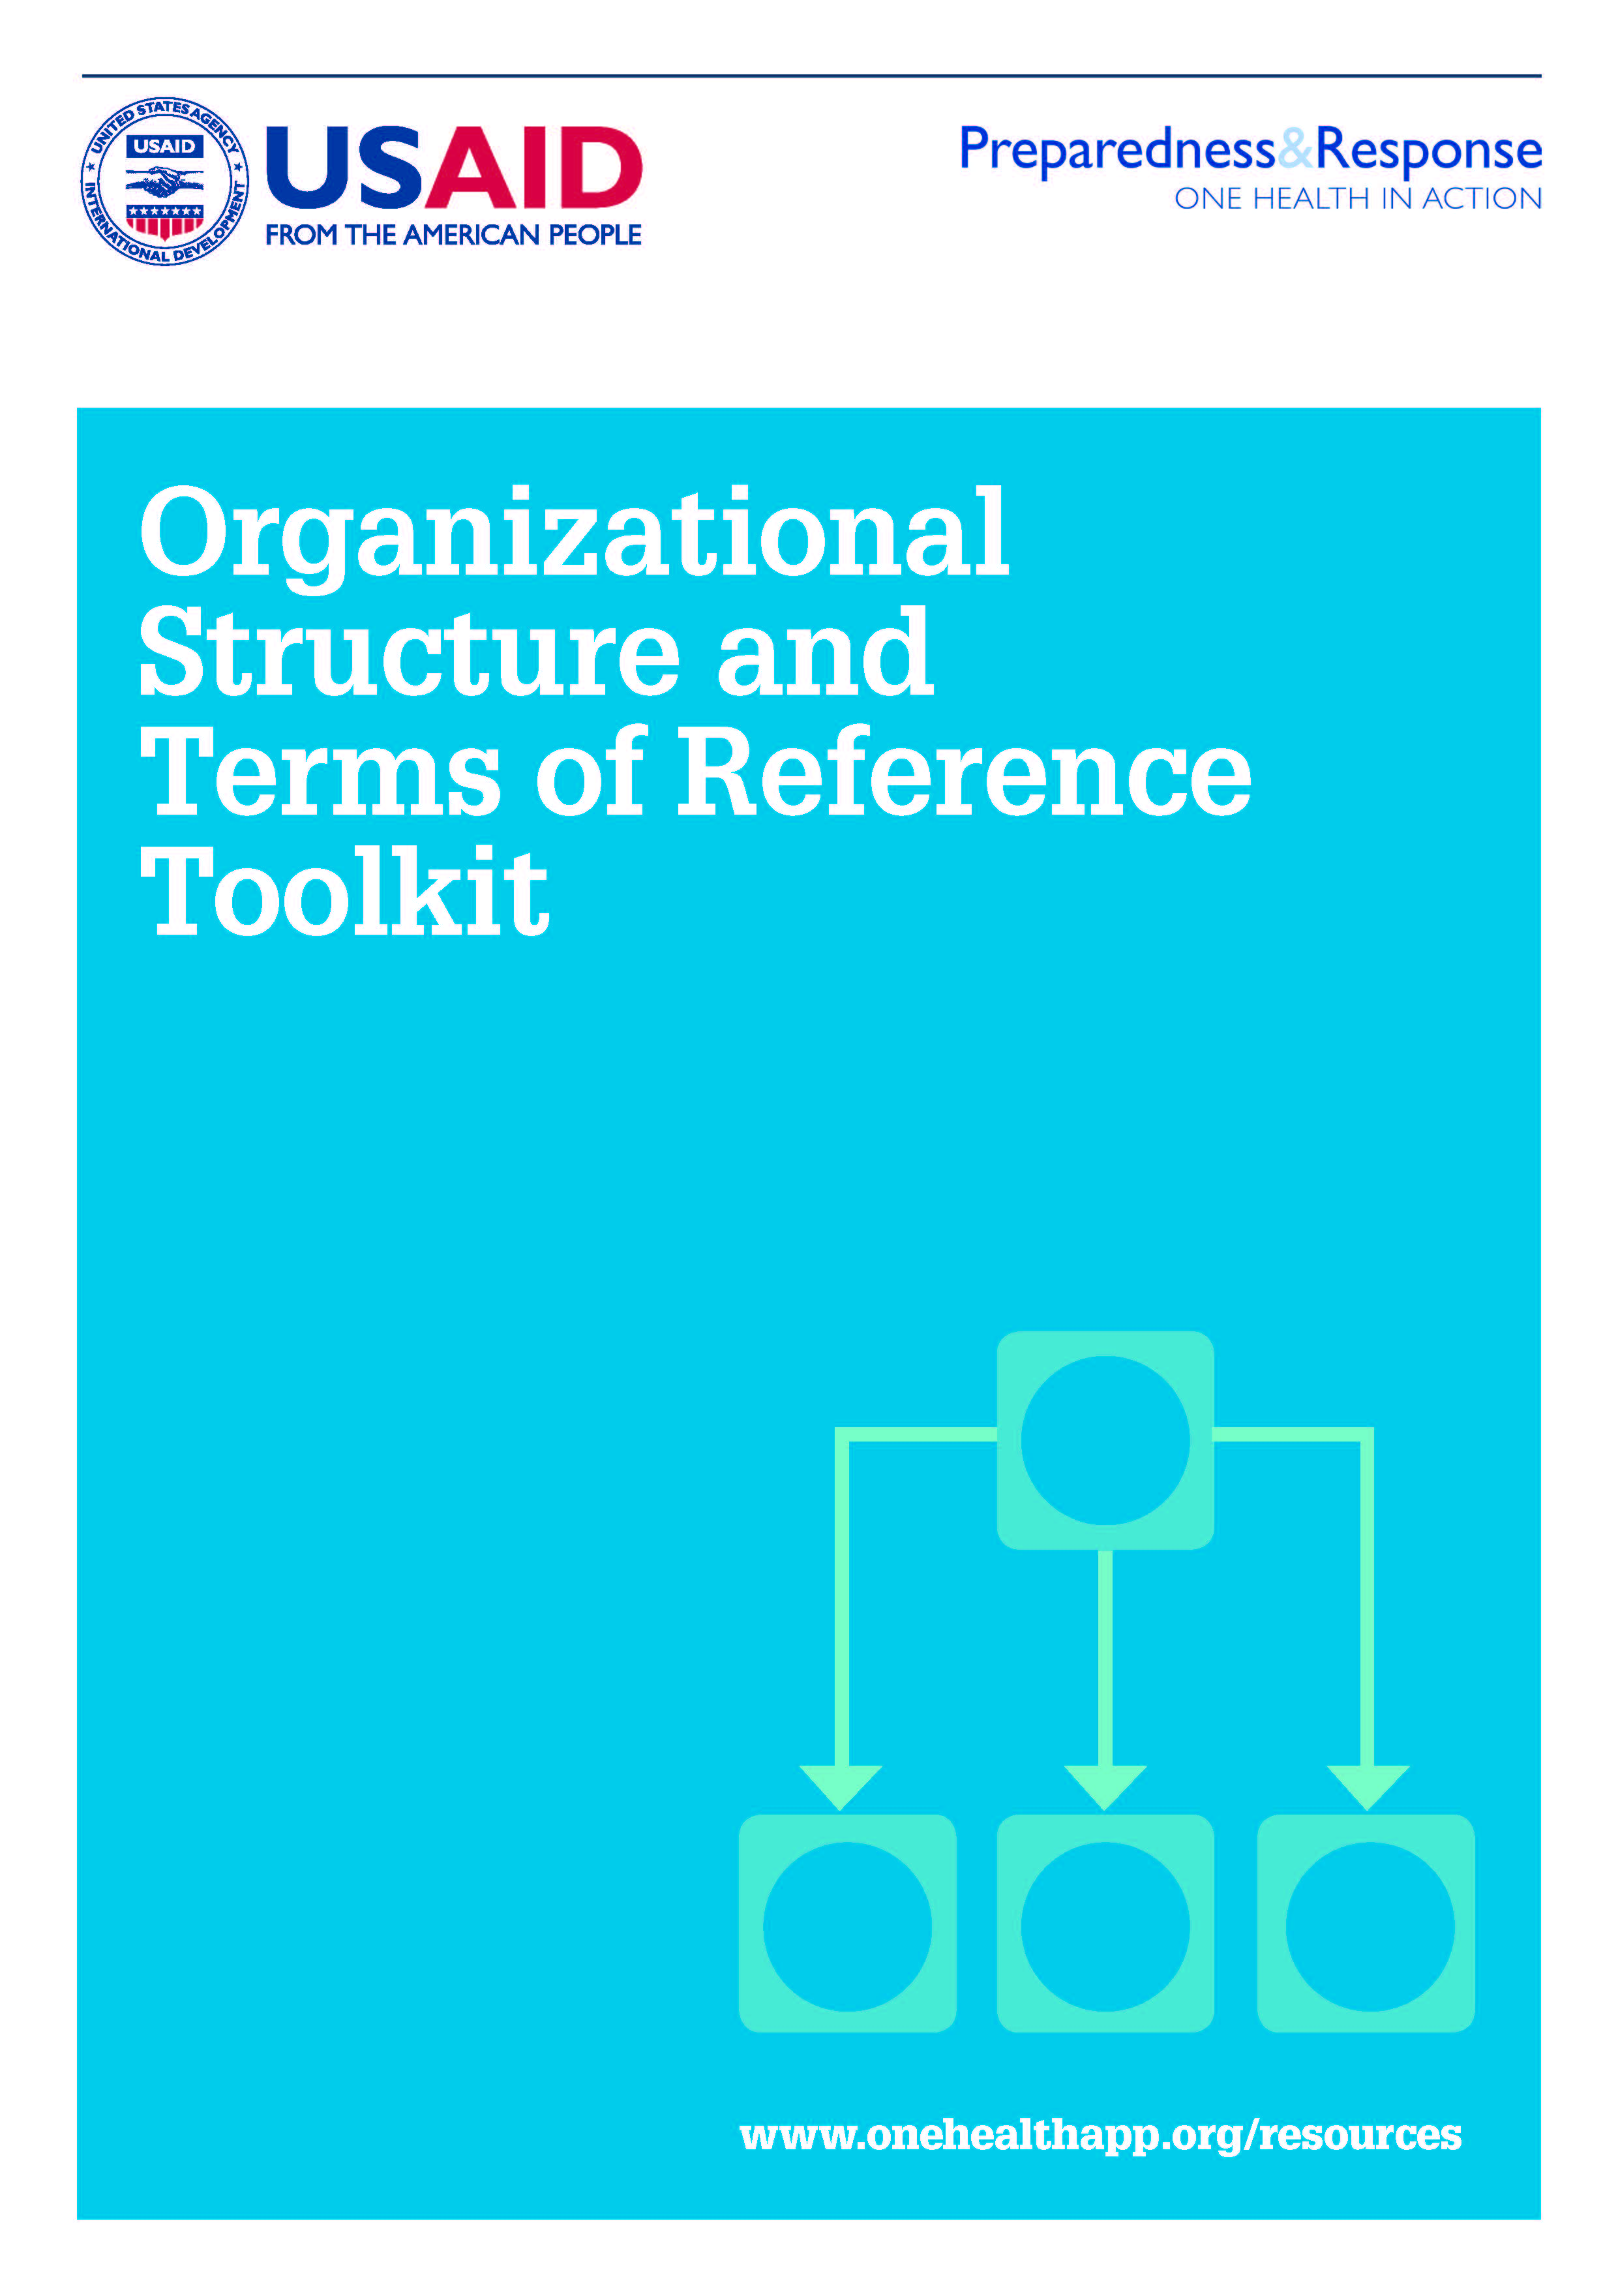 Org structure and TOR